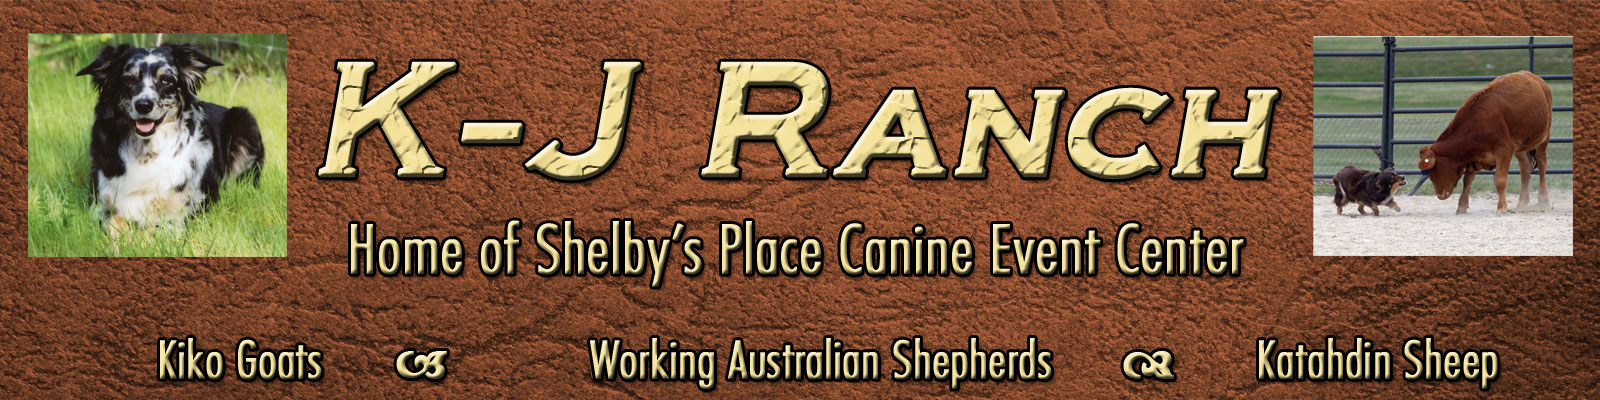 K-J Ranch, Livestock and Working Dogs